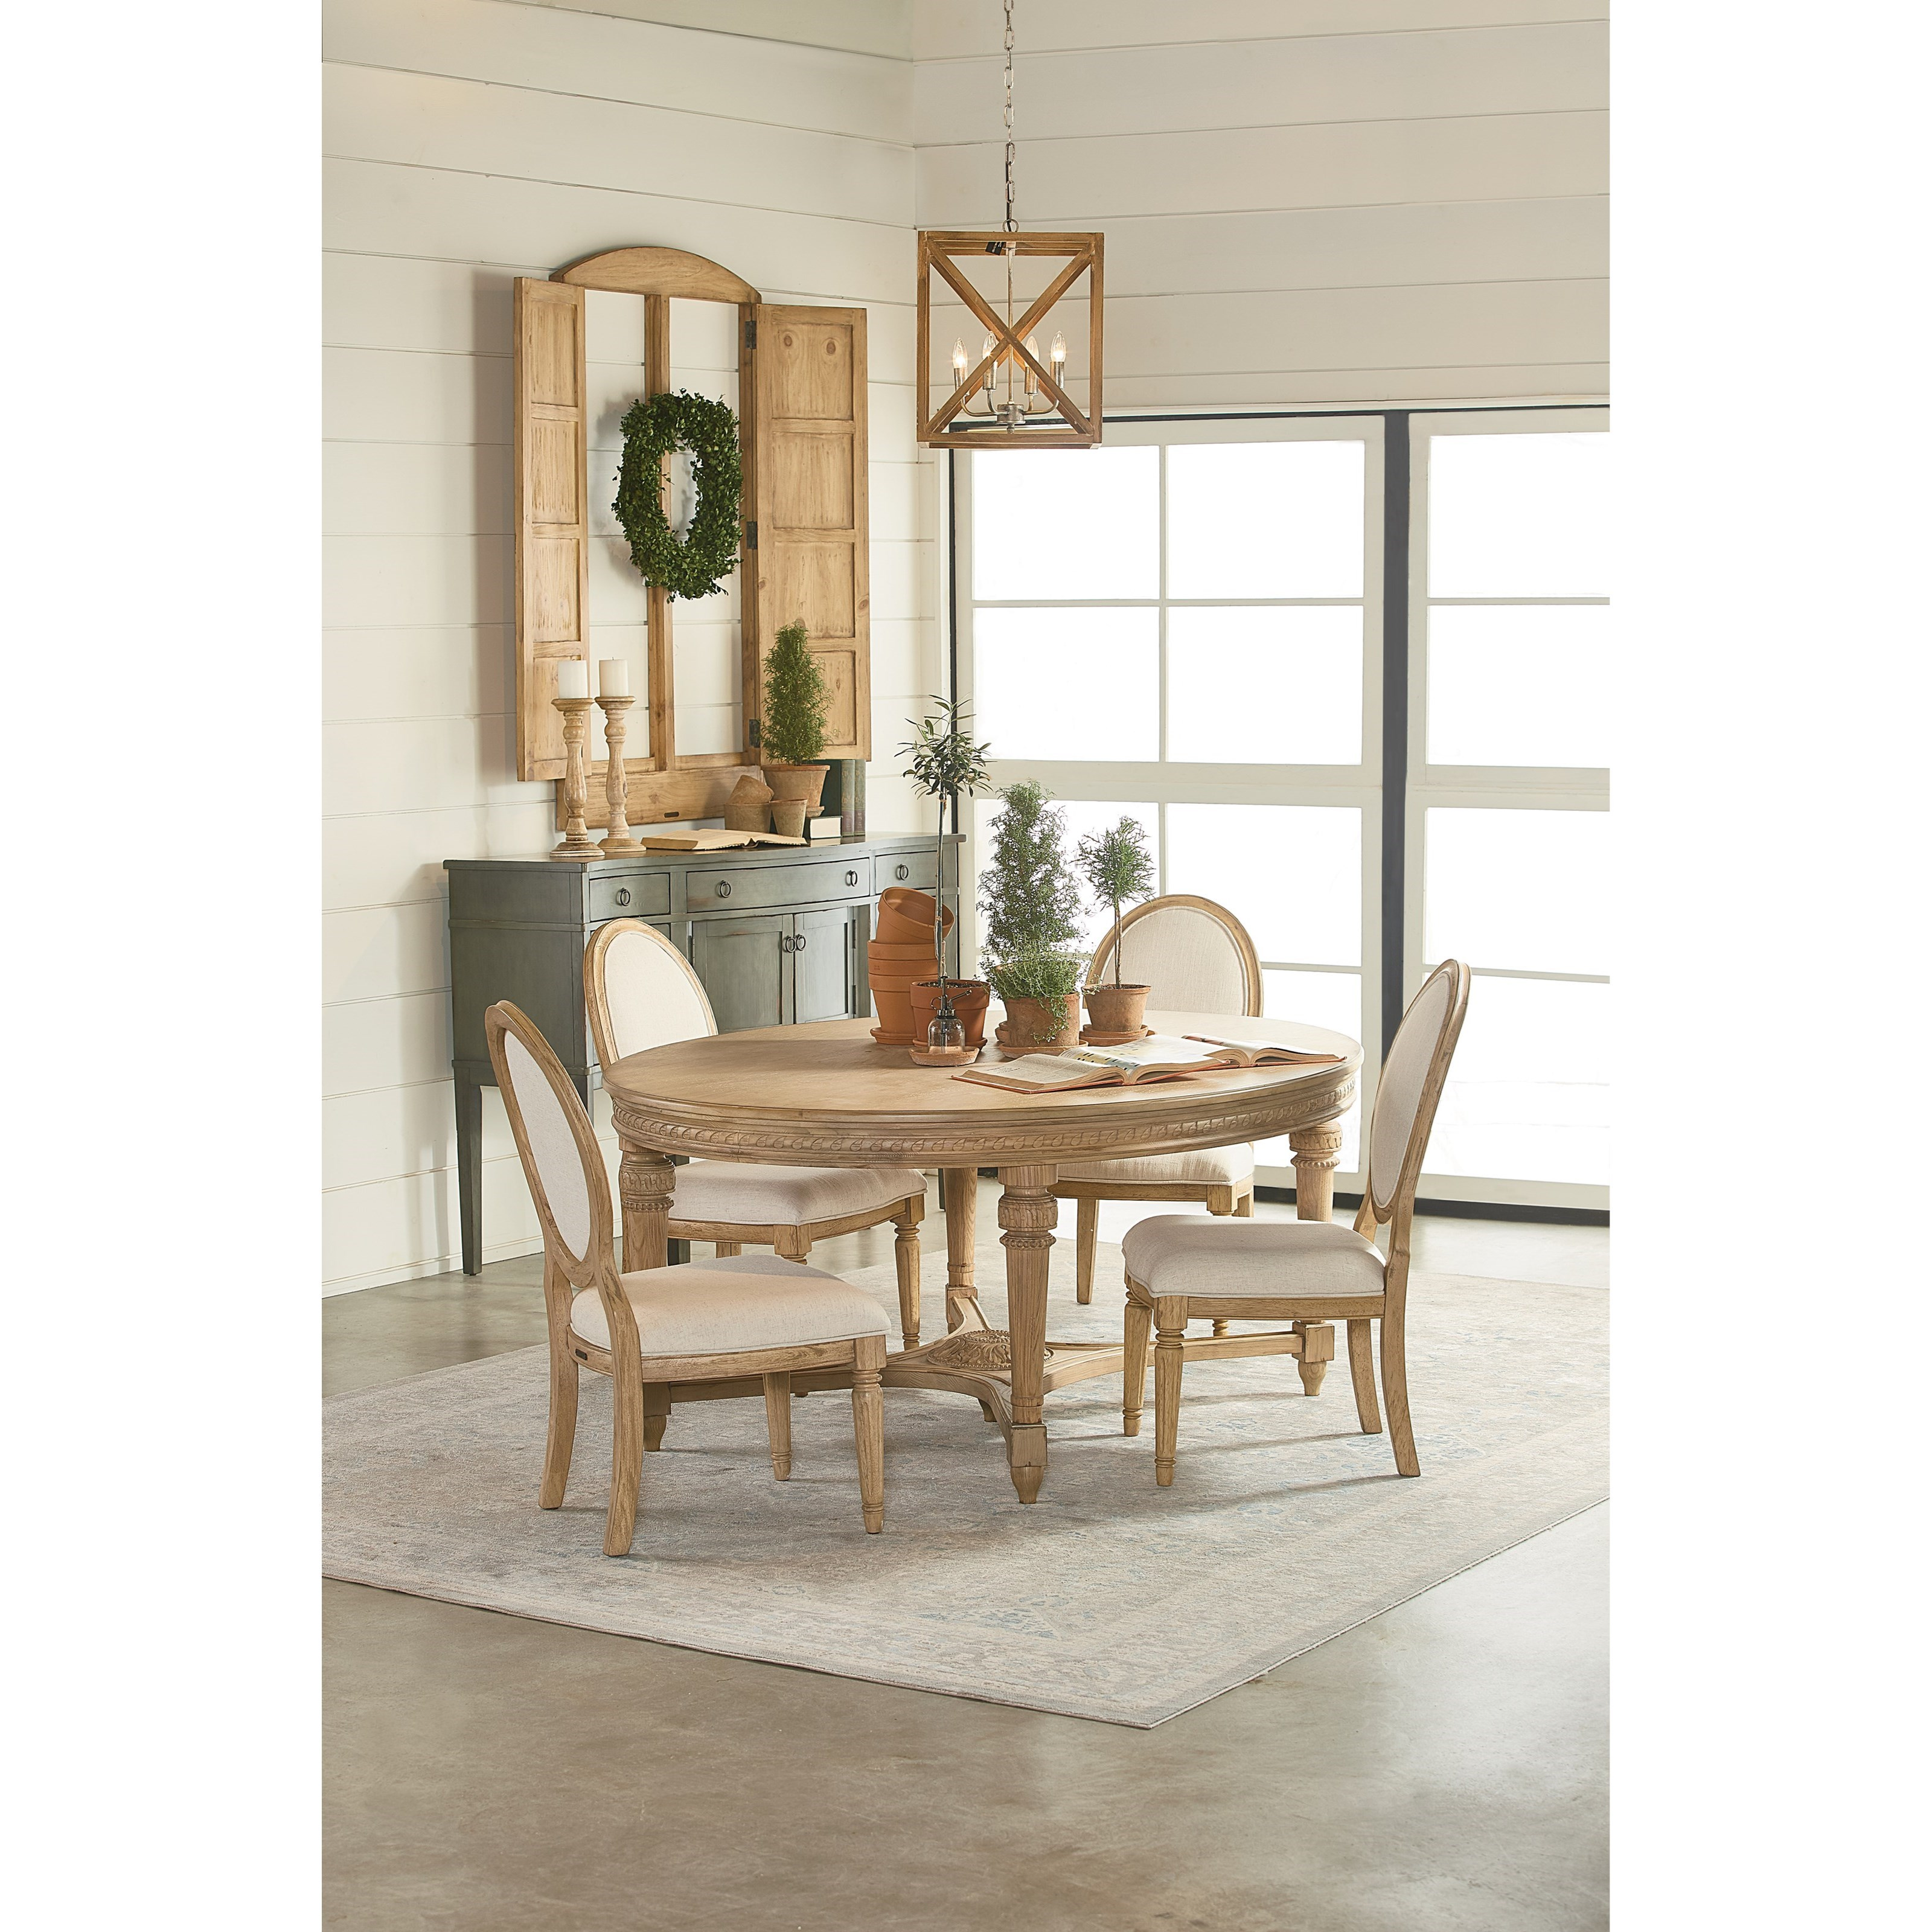 Oval Antique Dining Table With Wheat Finish By Magnolia Home